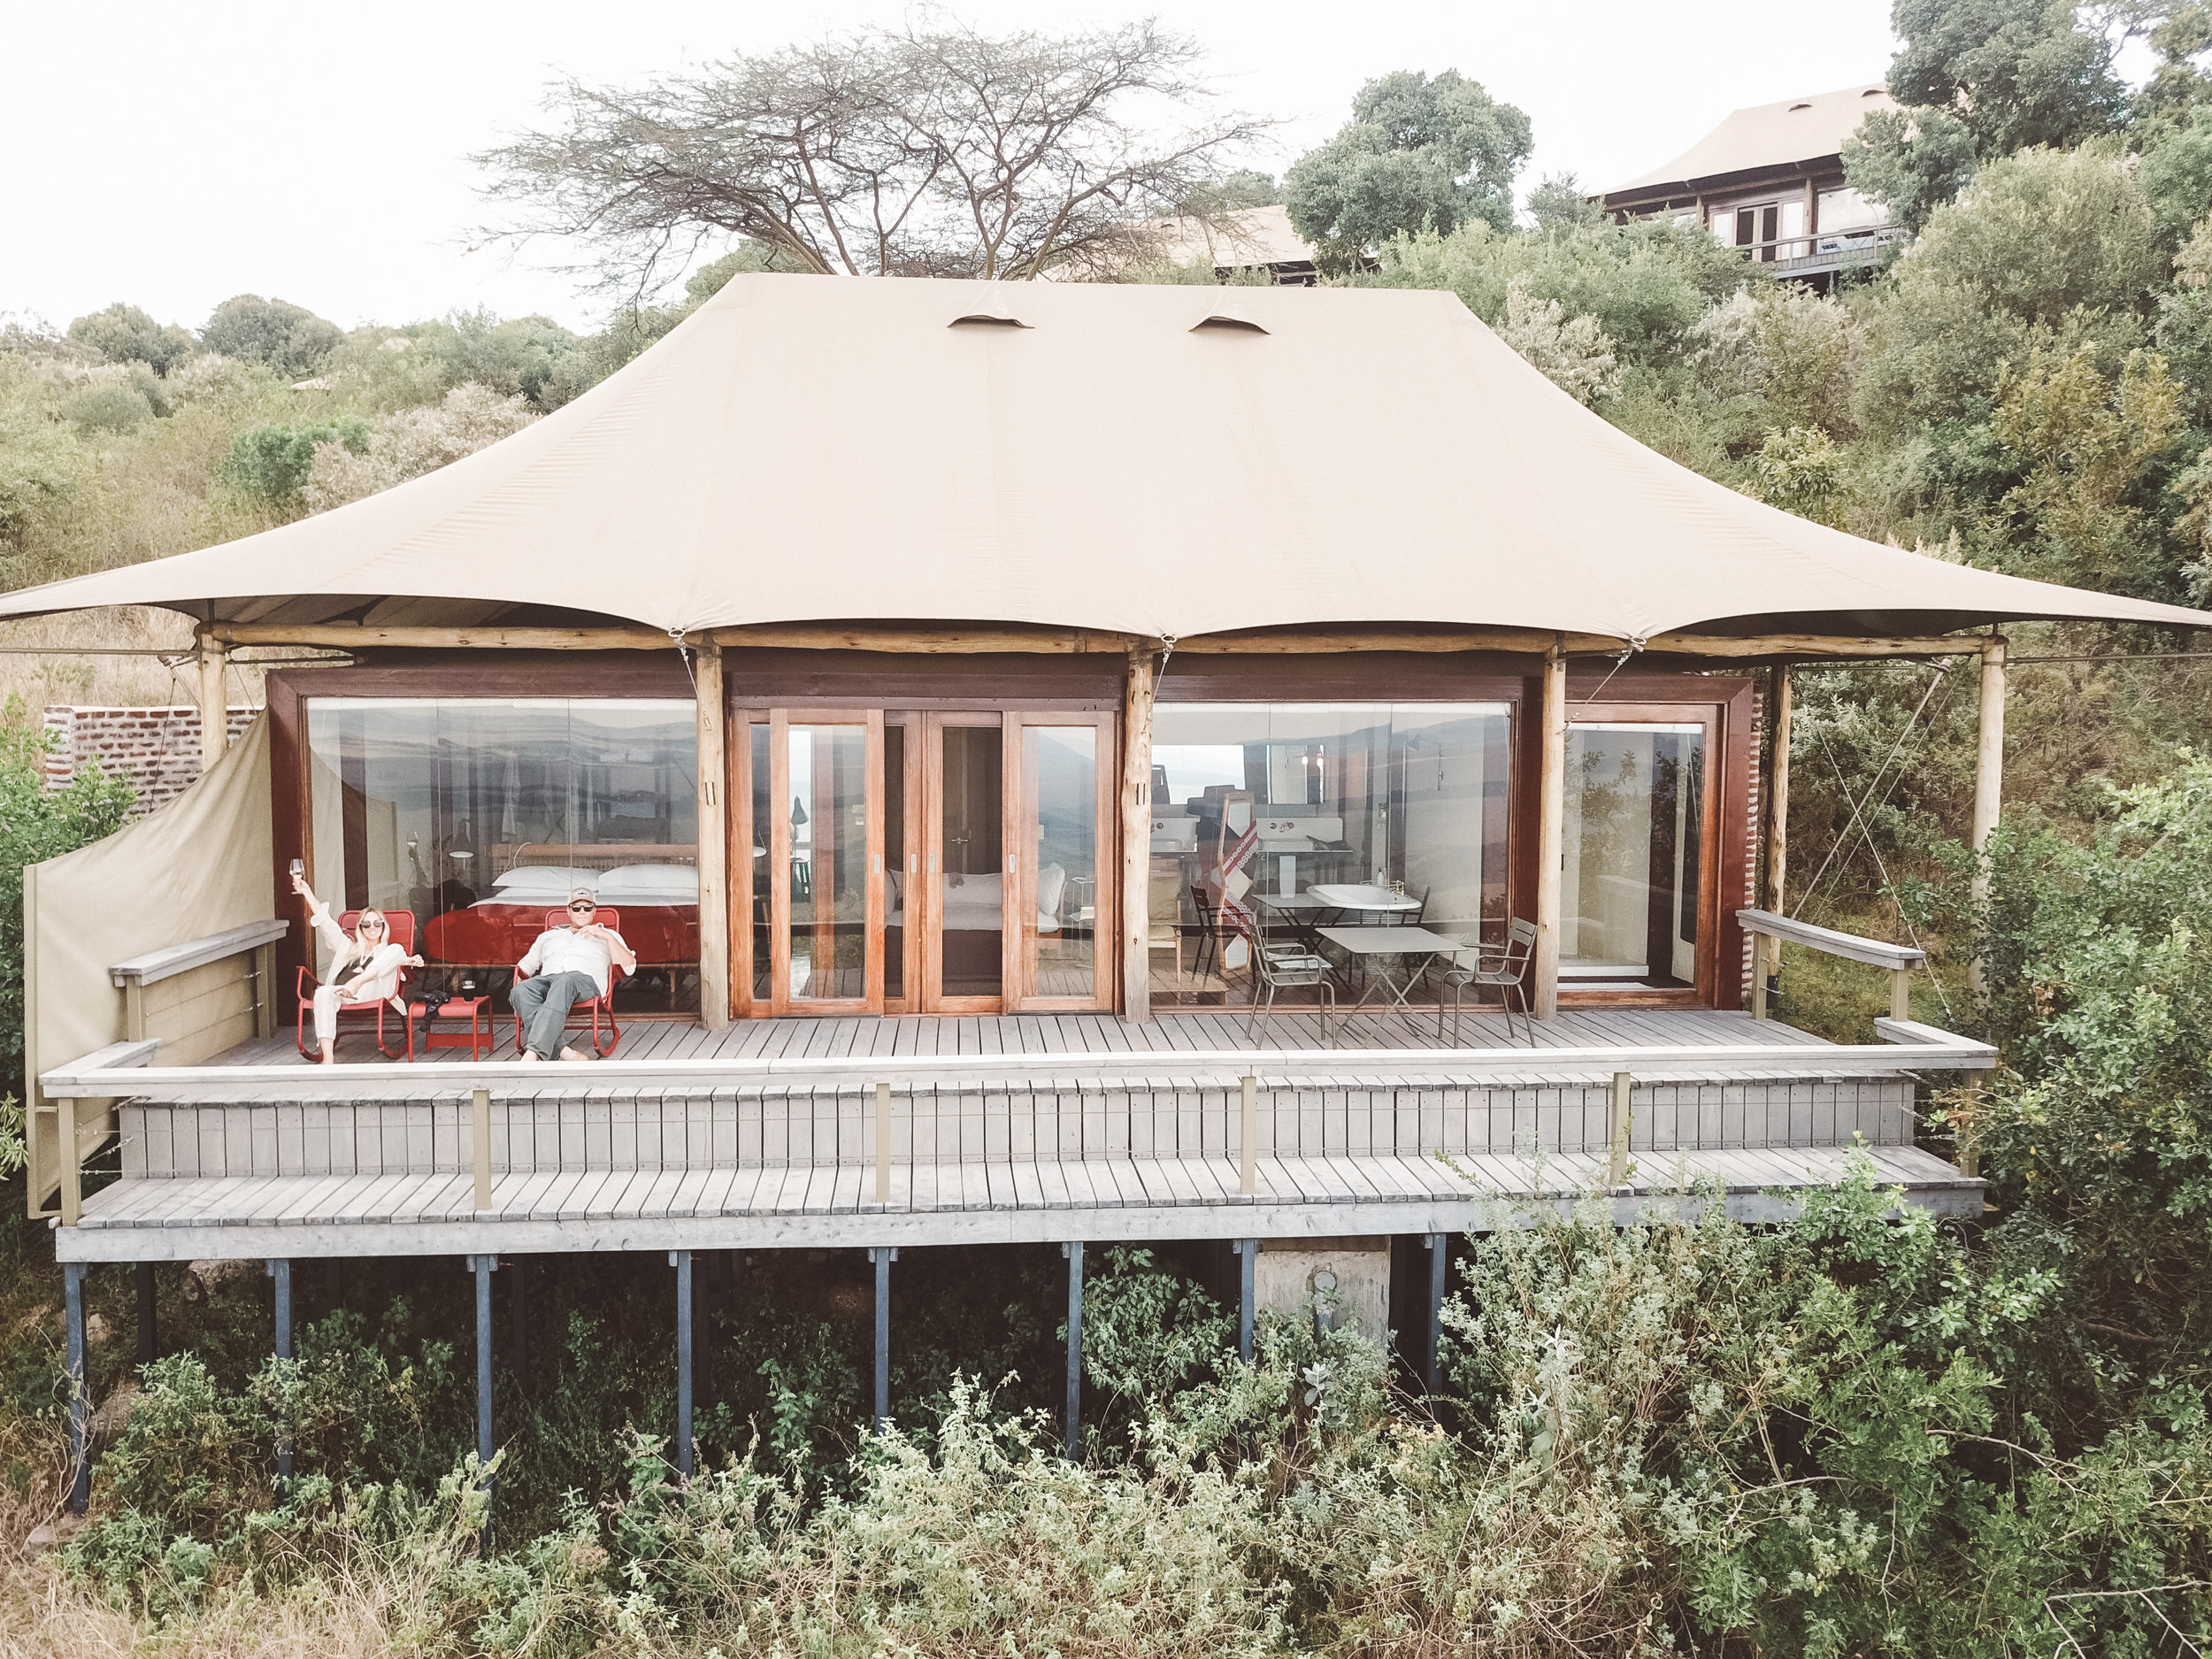 For more details on our stay, check out my review of Angama Mara over at  A Hotel Life .